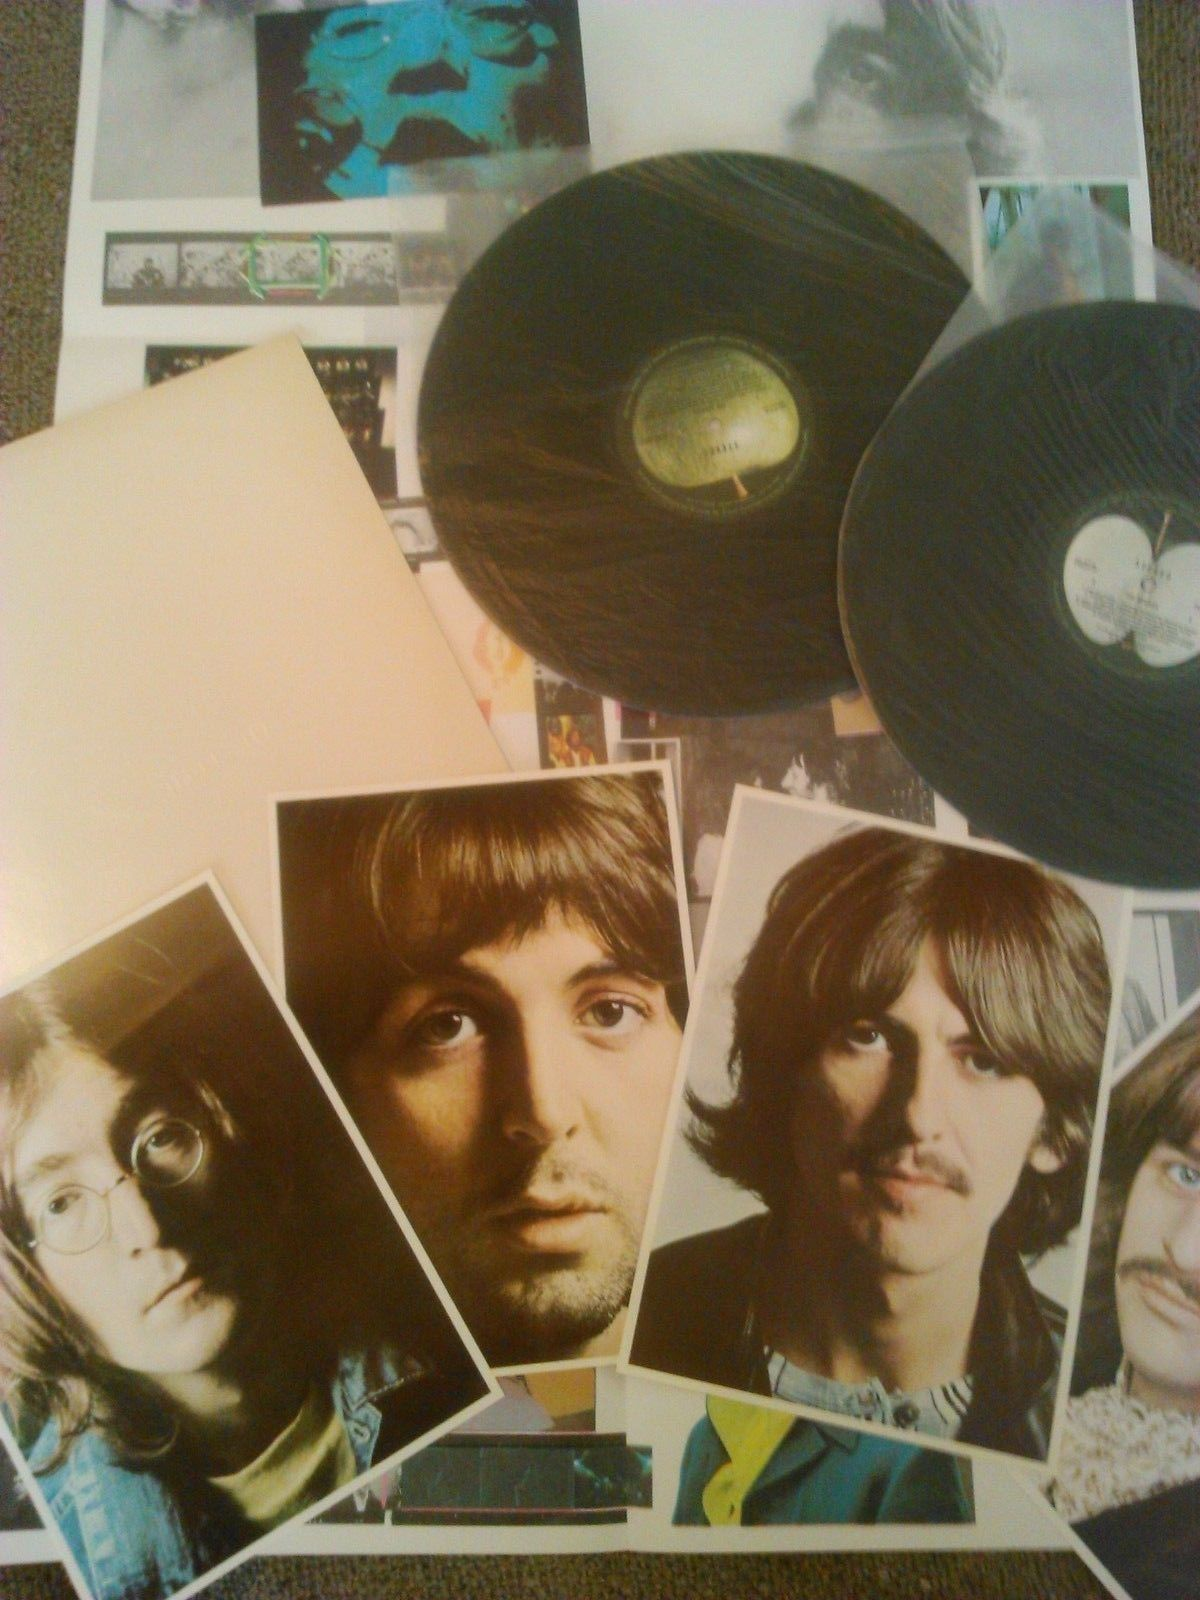 THE BEATLES - S / T ( WHITE ALBUM ) 2X LP + POSTER & PHOTOS EX+  RARE OZ APPLE